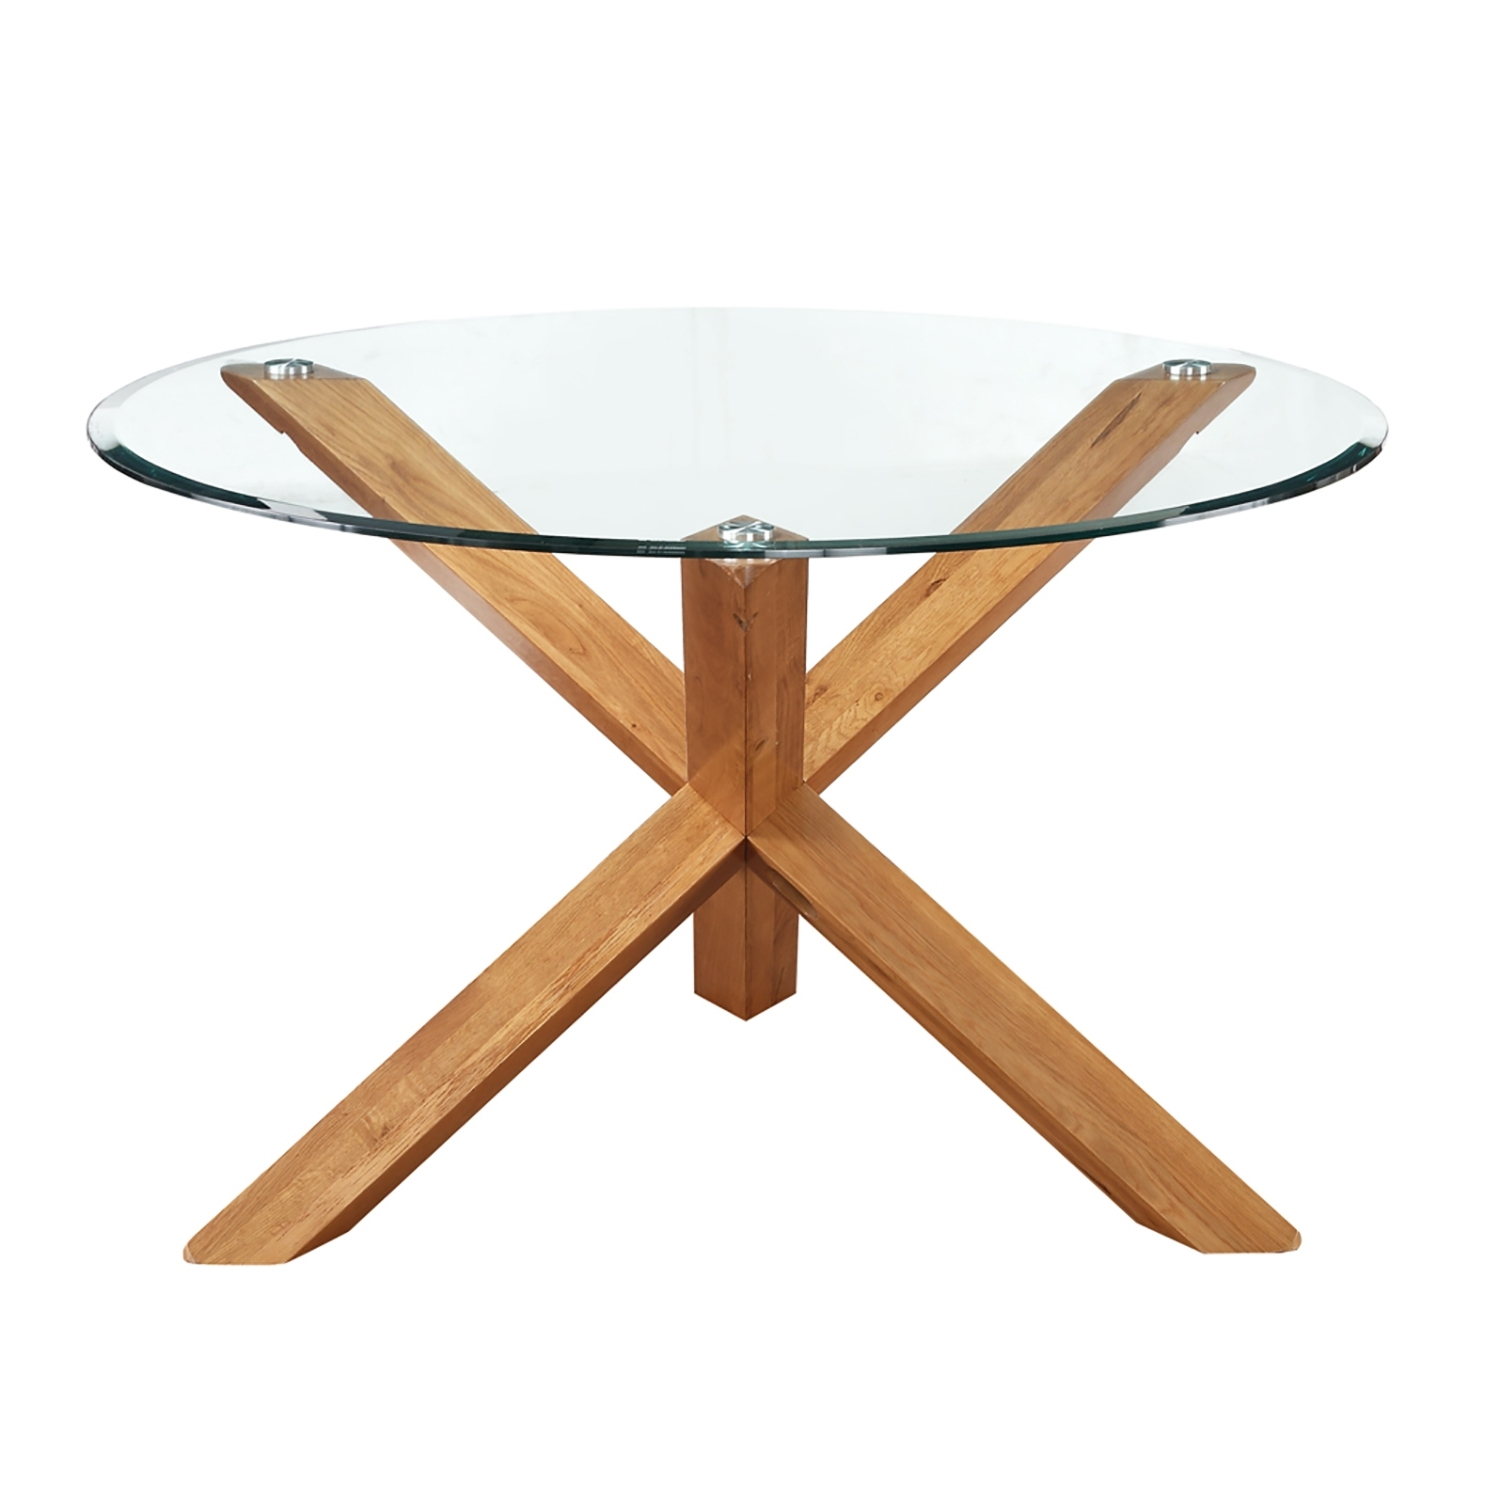 Oak And Glass Dining Tables Intended For Most Recent Miso Solid Oak And Glass Dining Table (View 7 of 25)